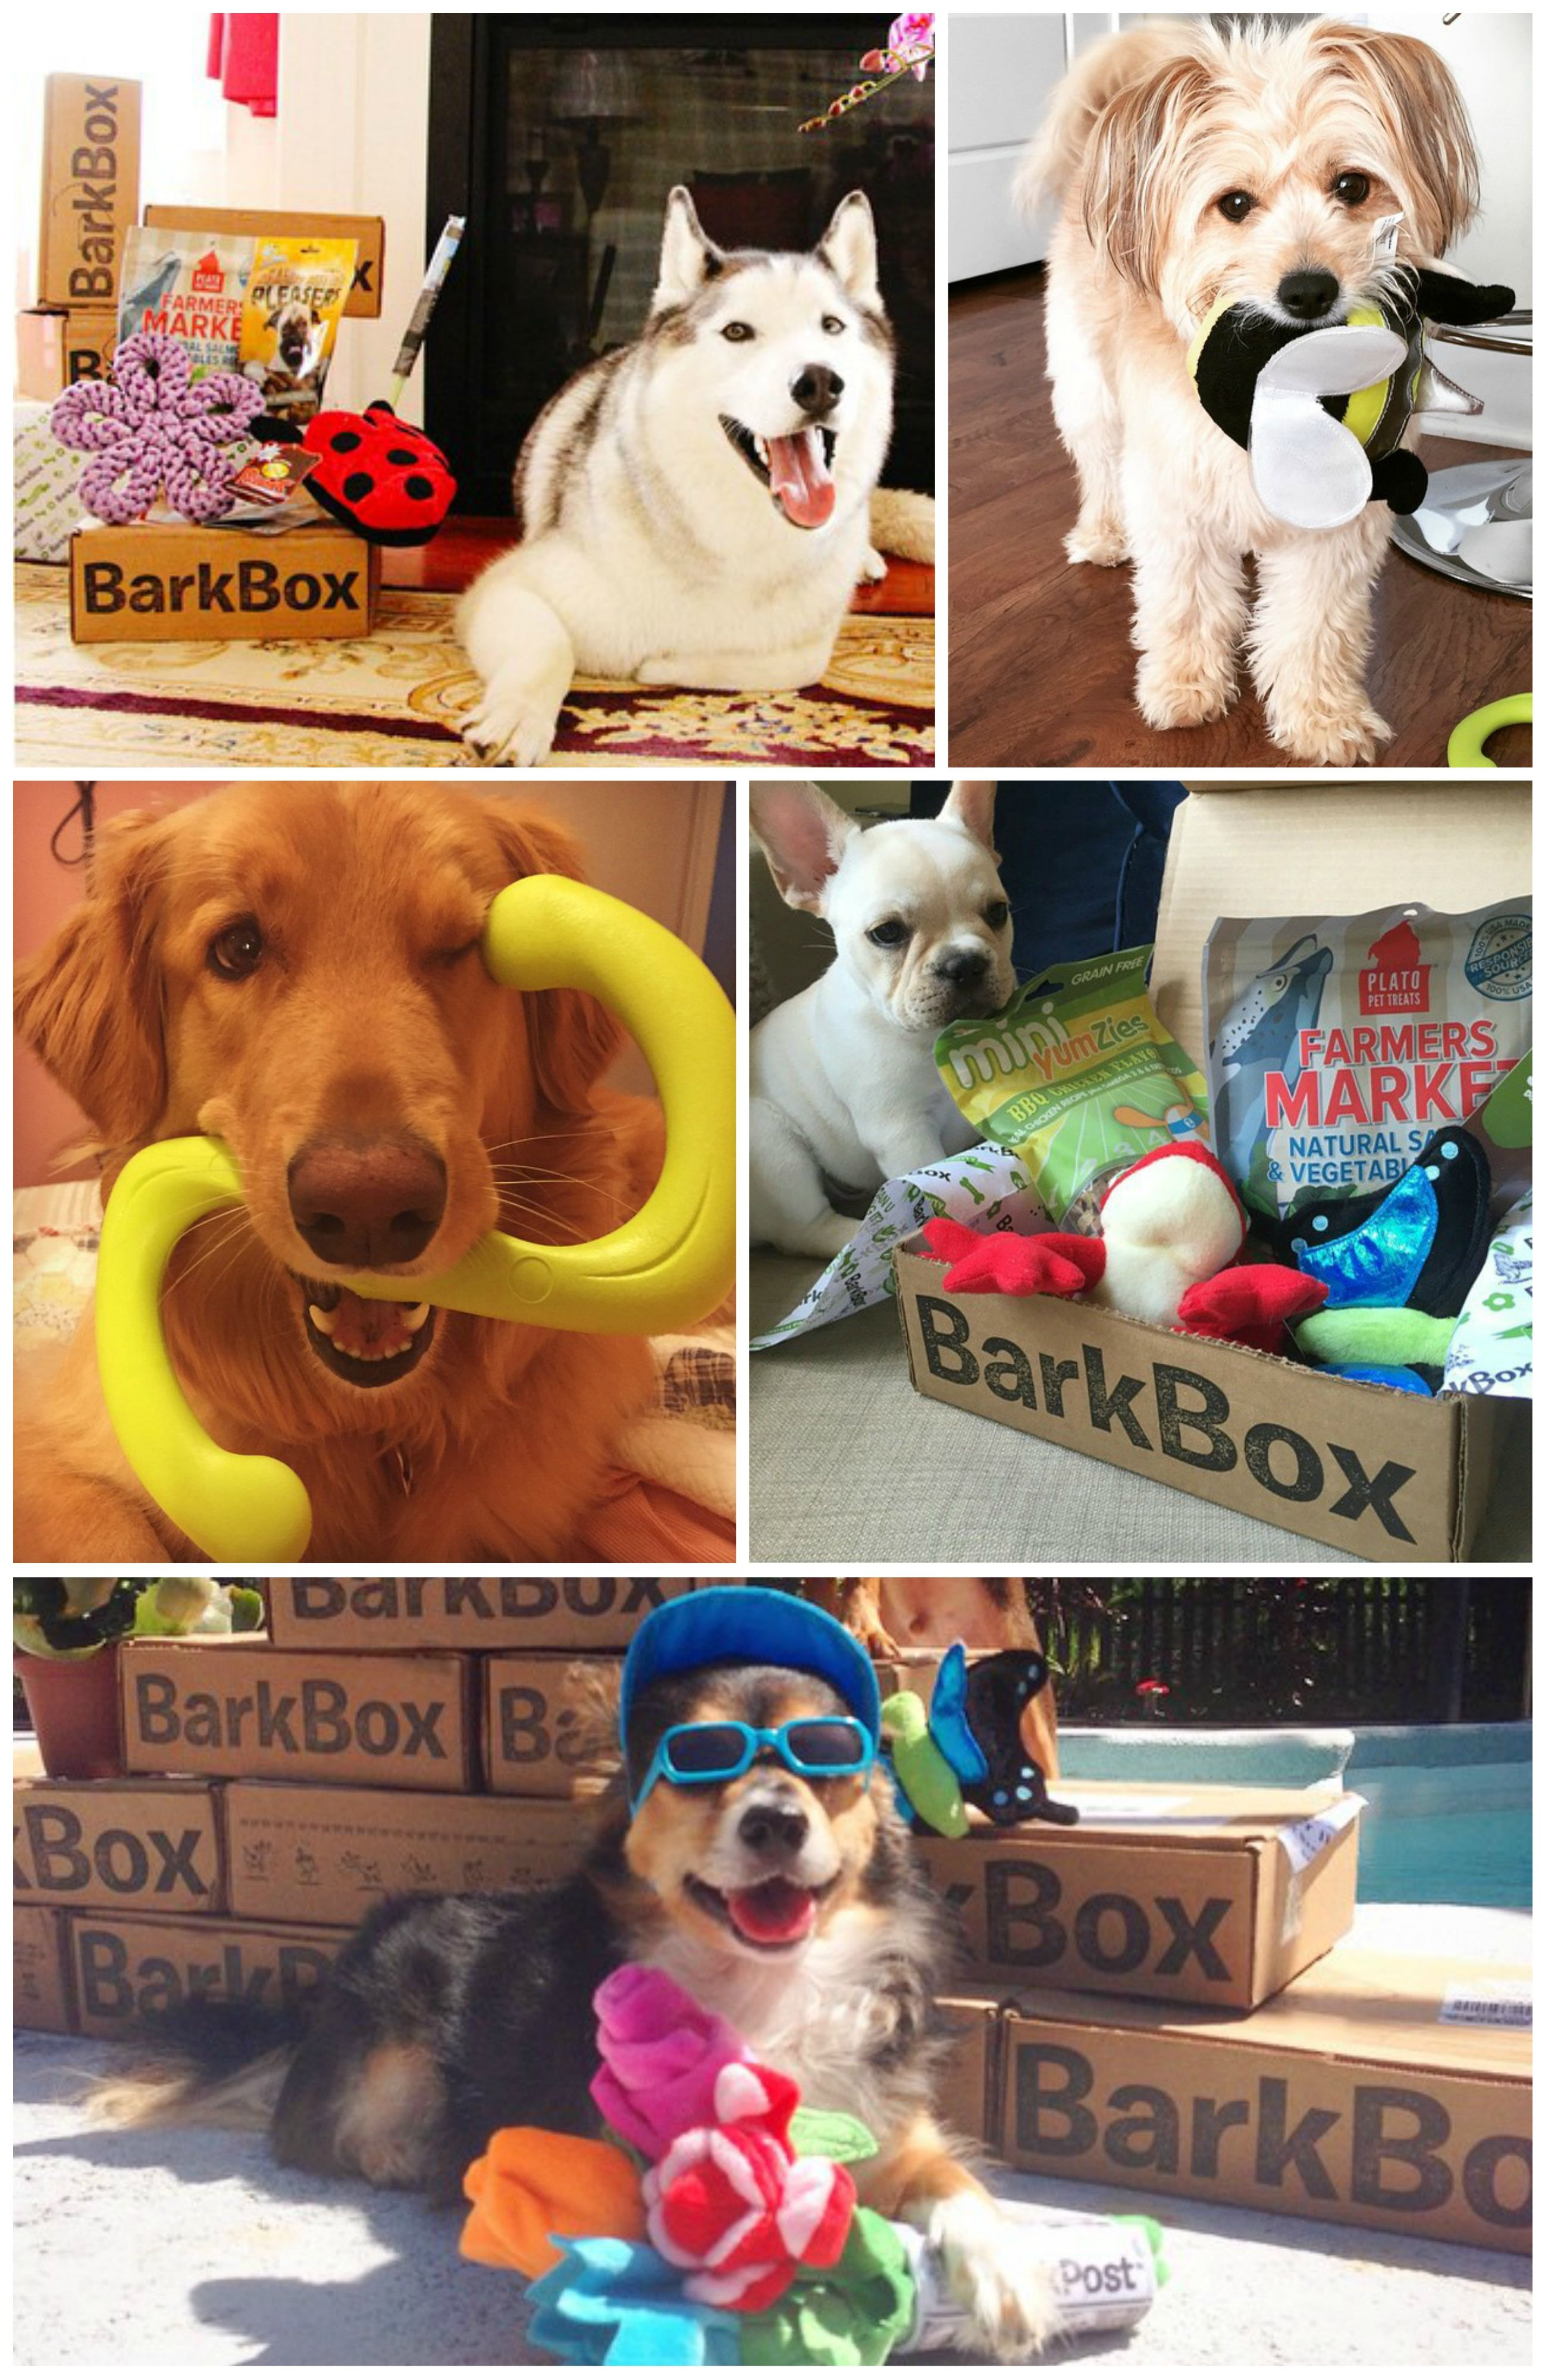 Happy pupstomers are pawtying it up with their new treats